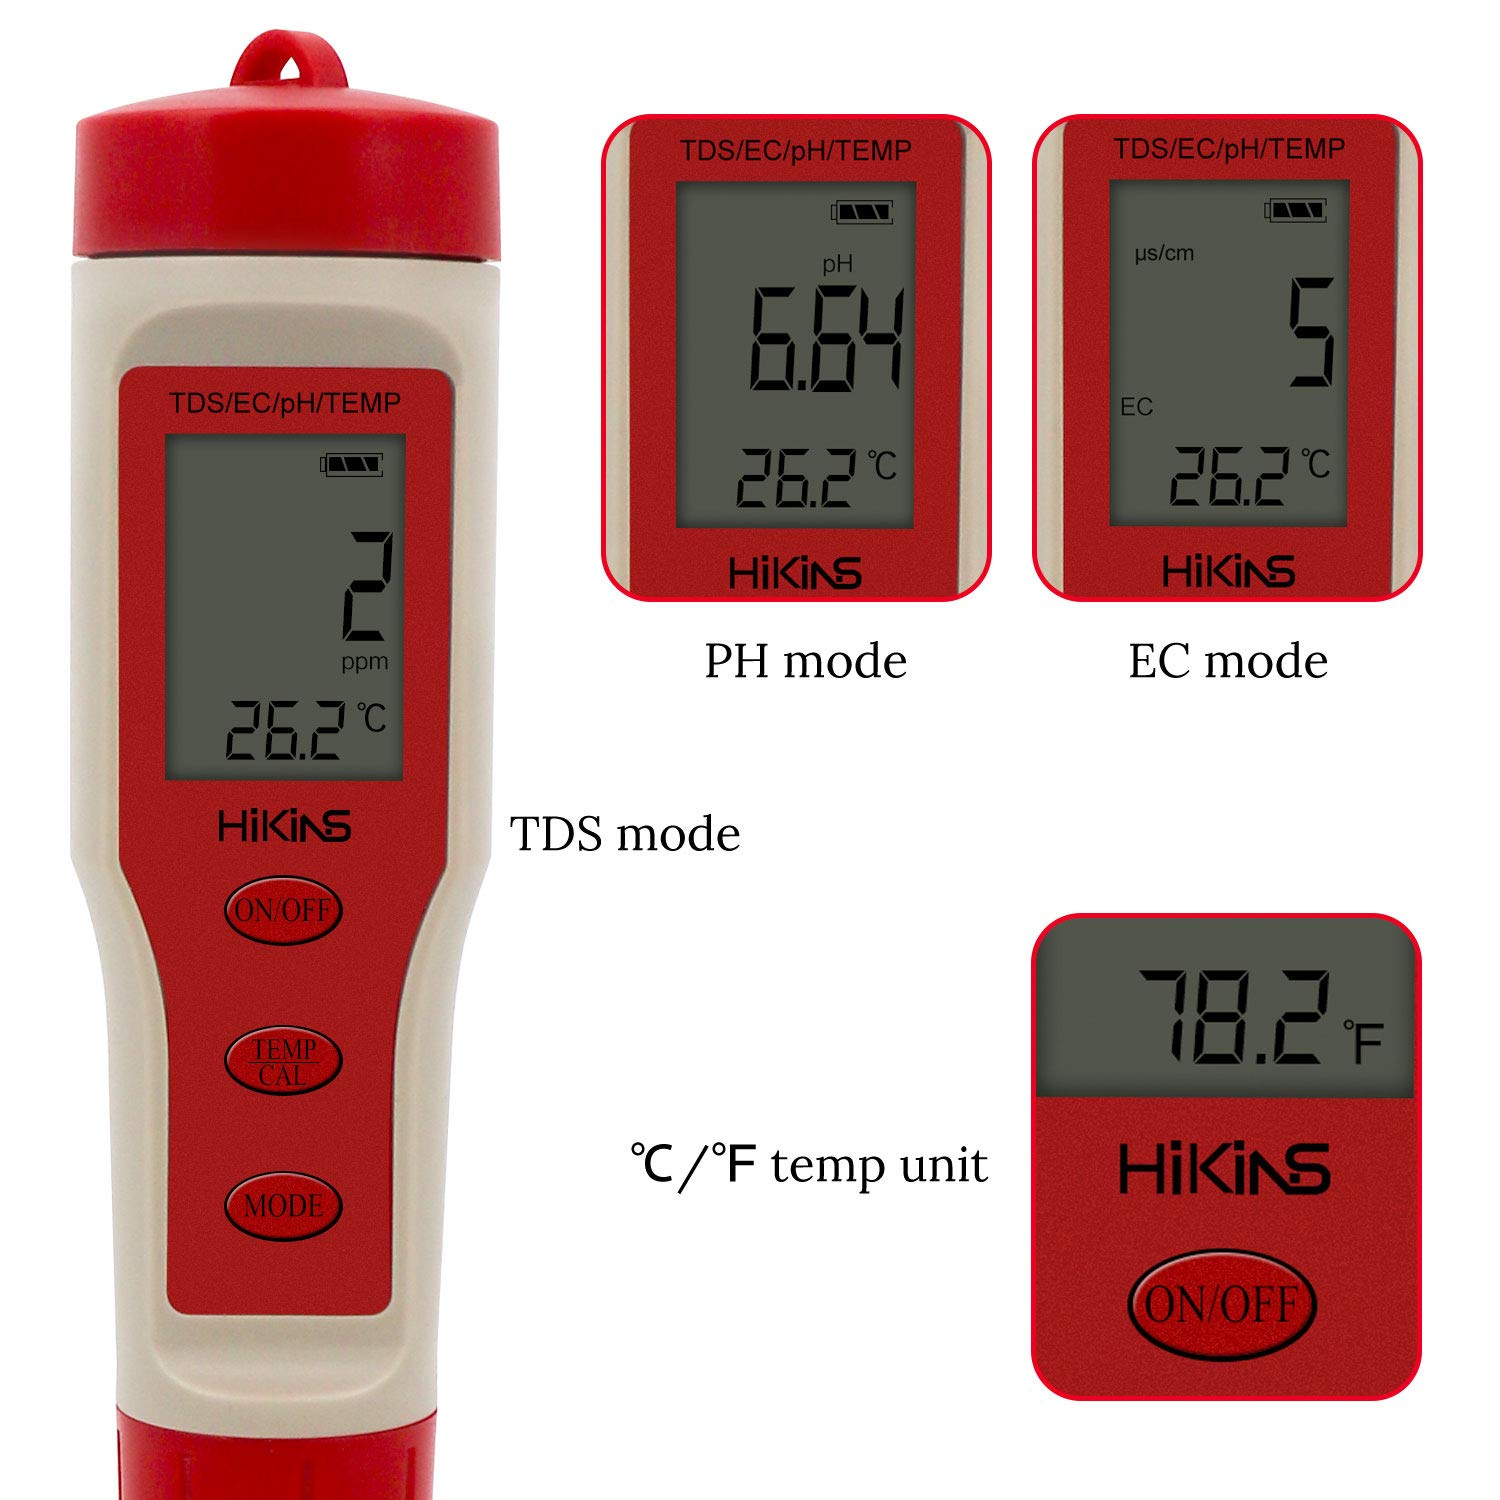 HiKiNS Digital Water Quality Meter High Accuracy 4 in 1 PH//TDS//EC//TEMP Tester for Aquariums Hydroponics Pool Spa Drinking water